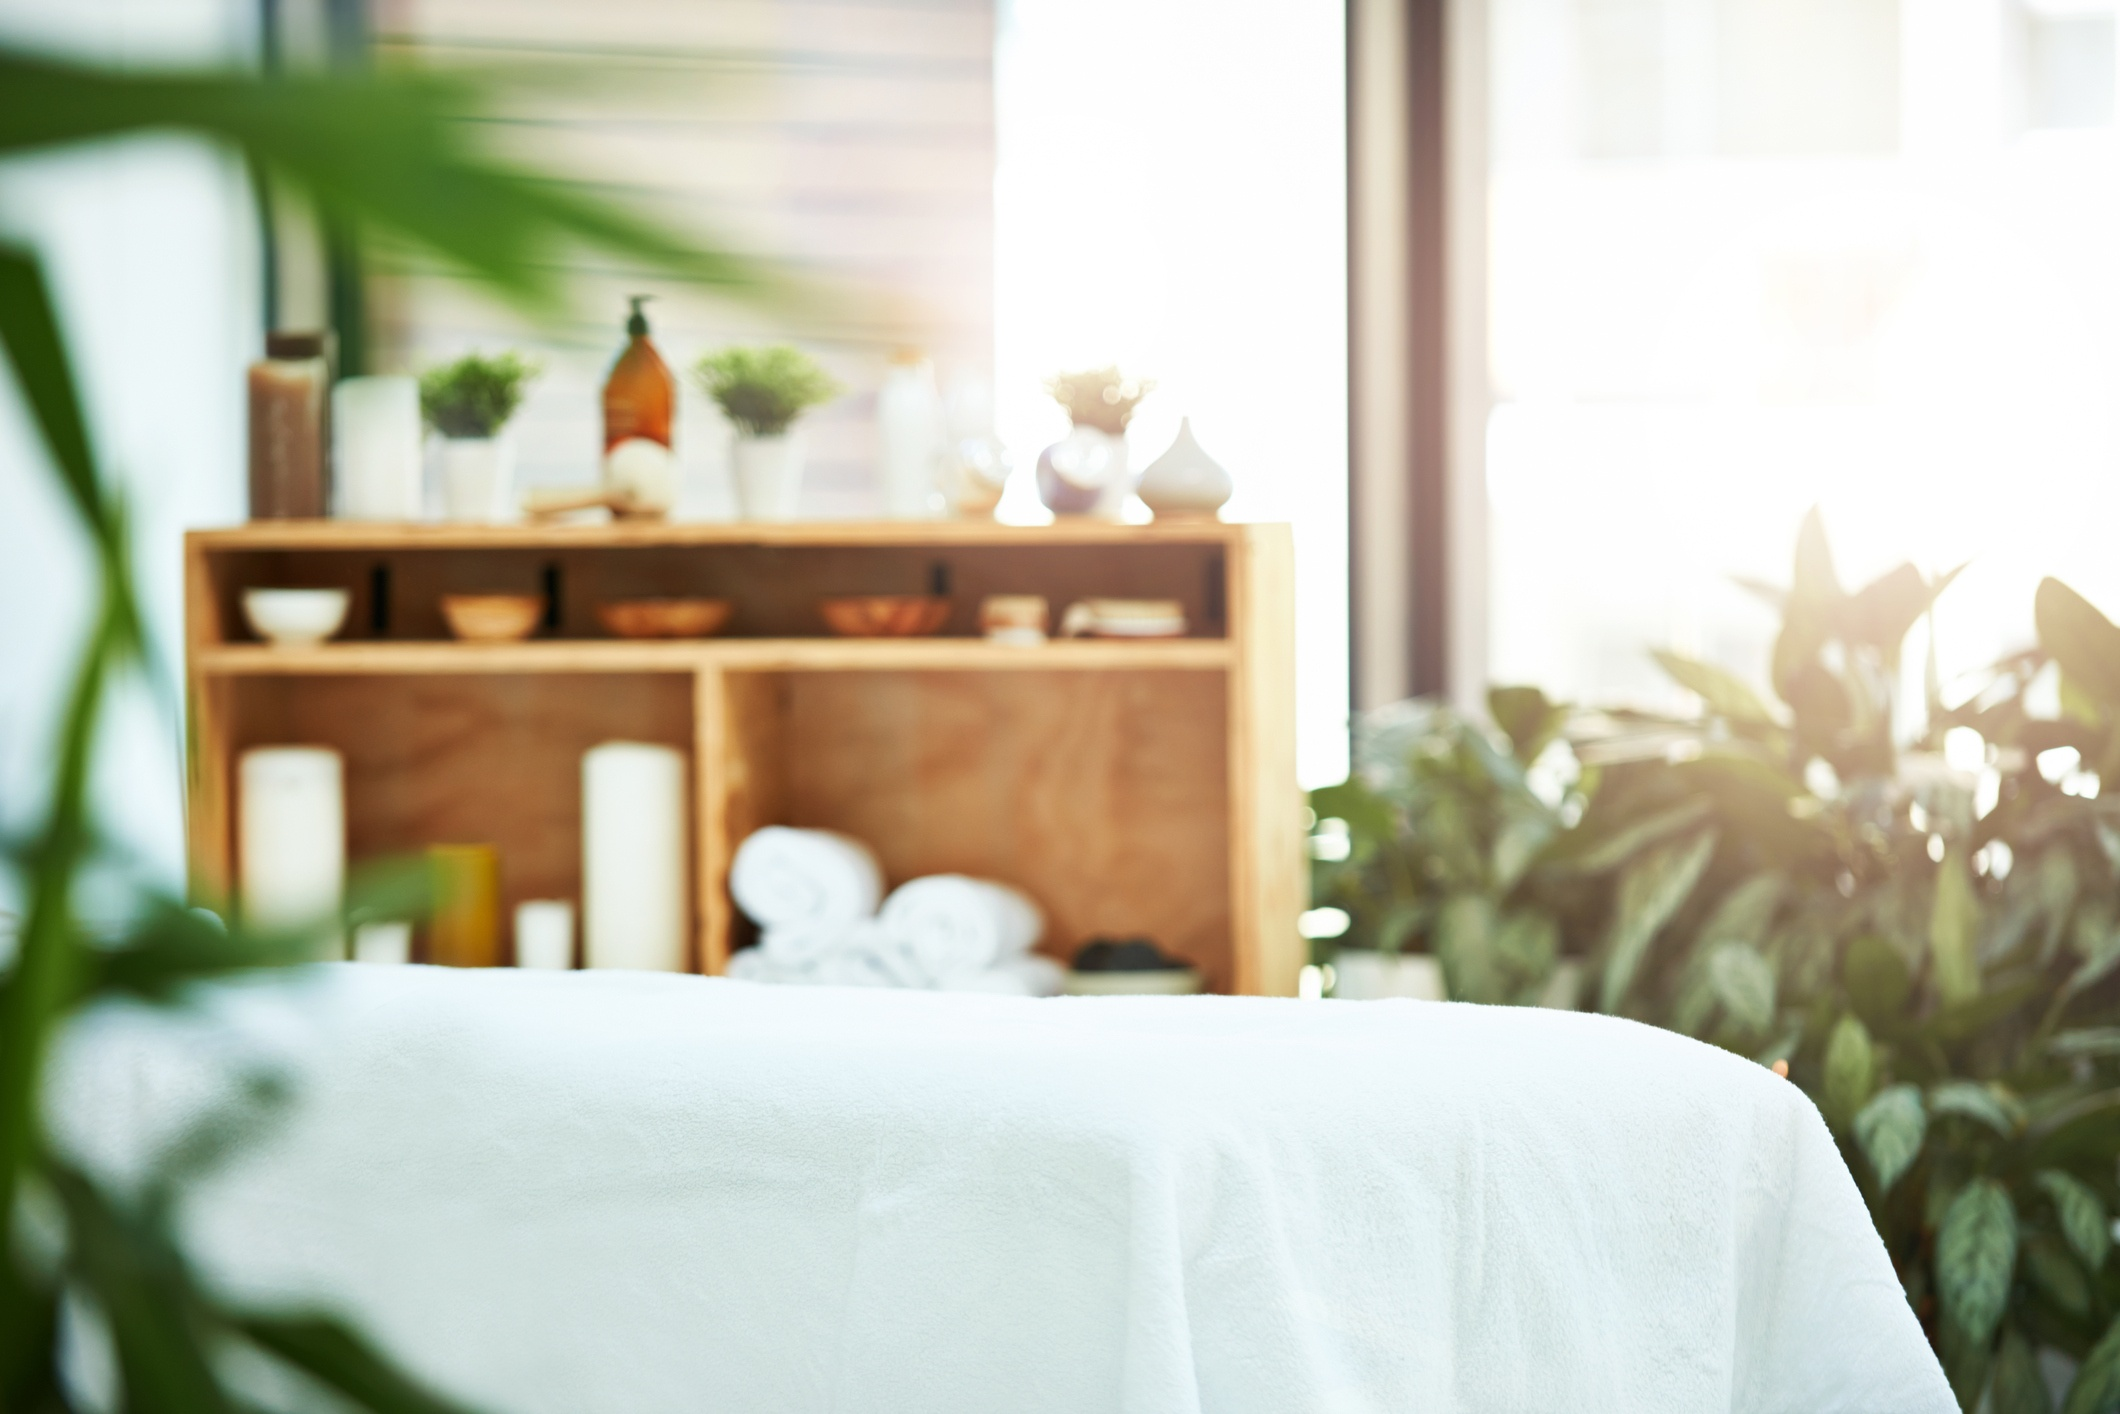 How to Make a Successful Second Career in Massage Therapy